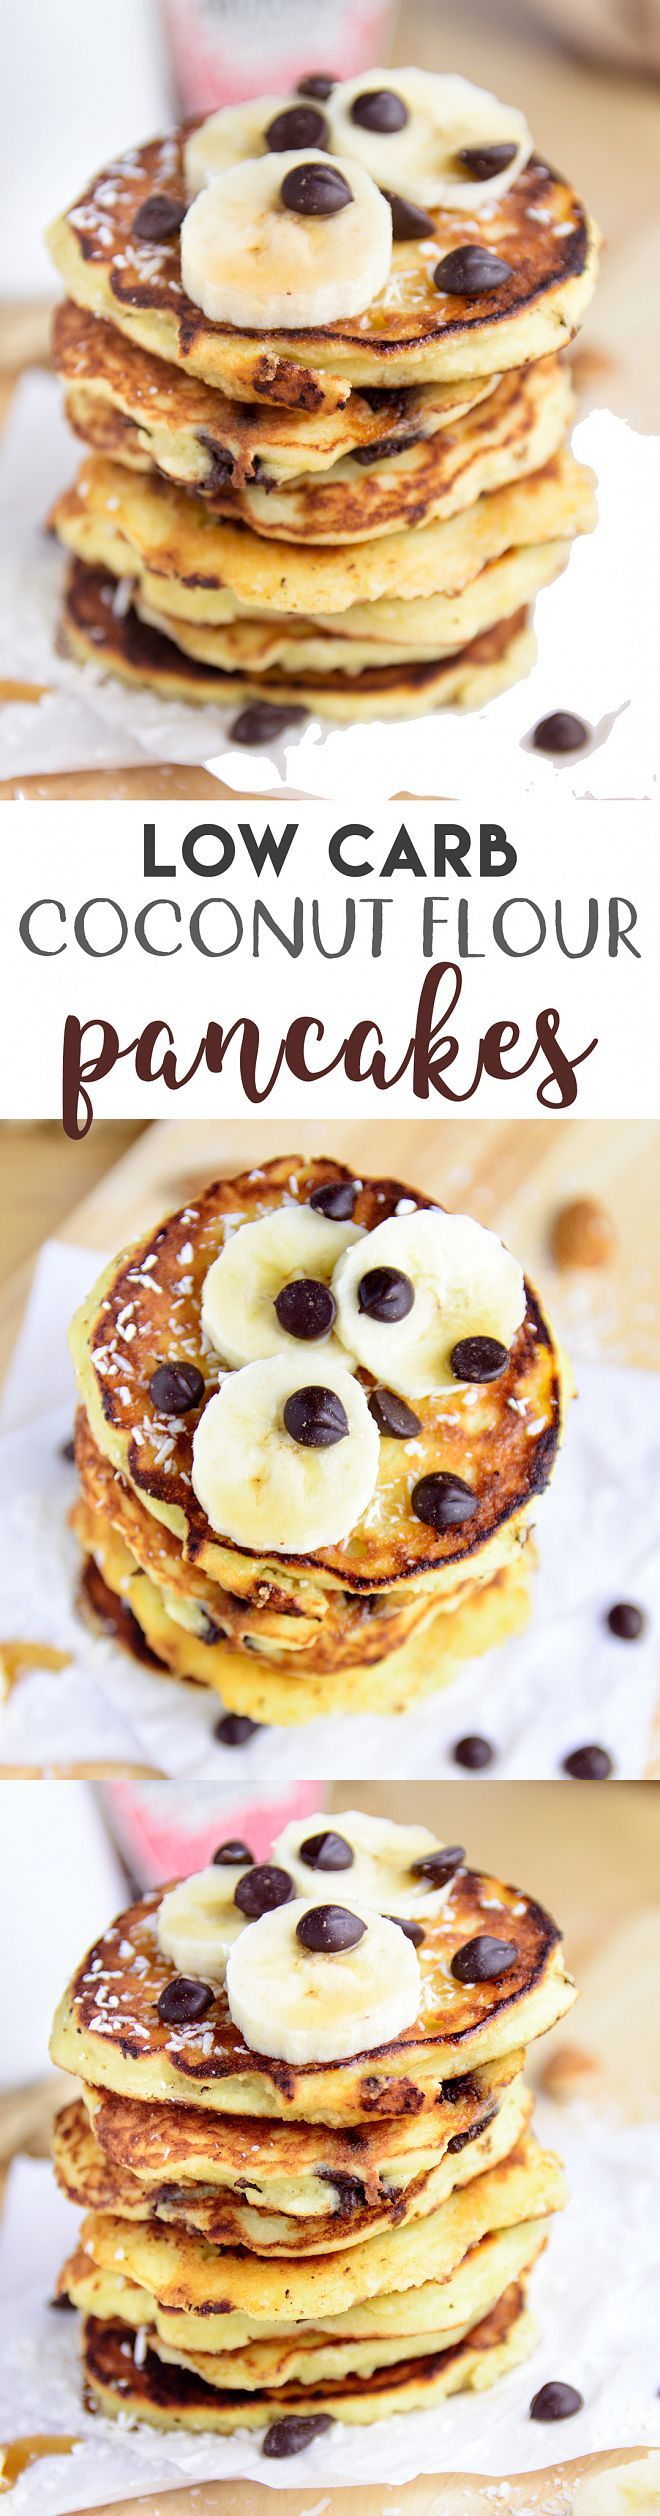 Easy, fluffy and delicious low carb coconut flour pancakes that could make a filling and healthy breakfast treat! { #glutenfree, #lowcarb, #sugarfree} | myzucchinirecipes.com